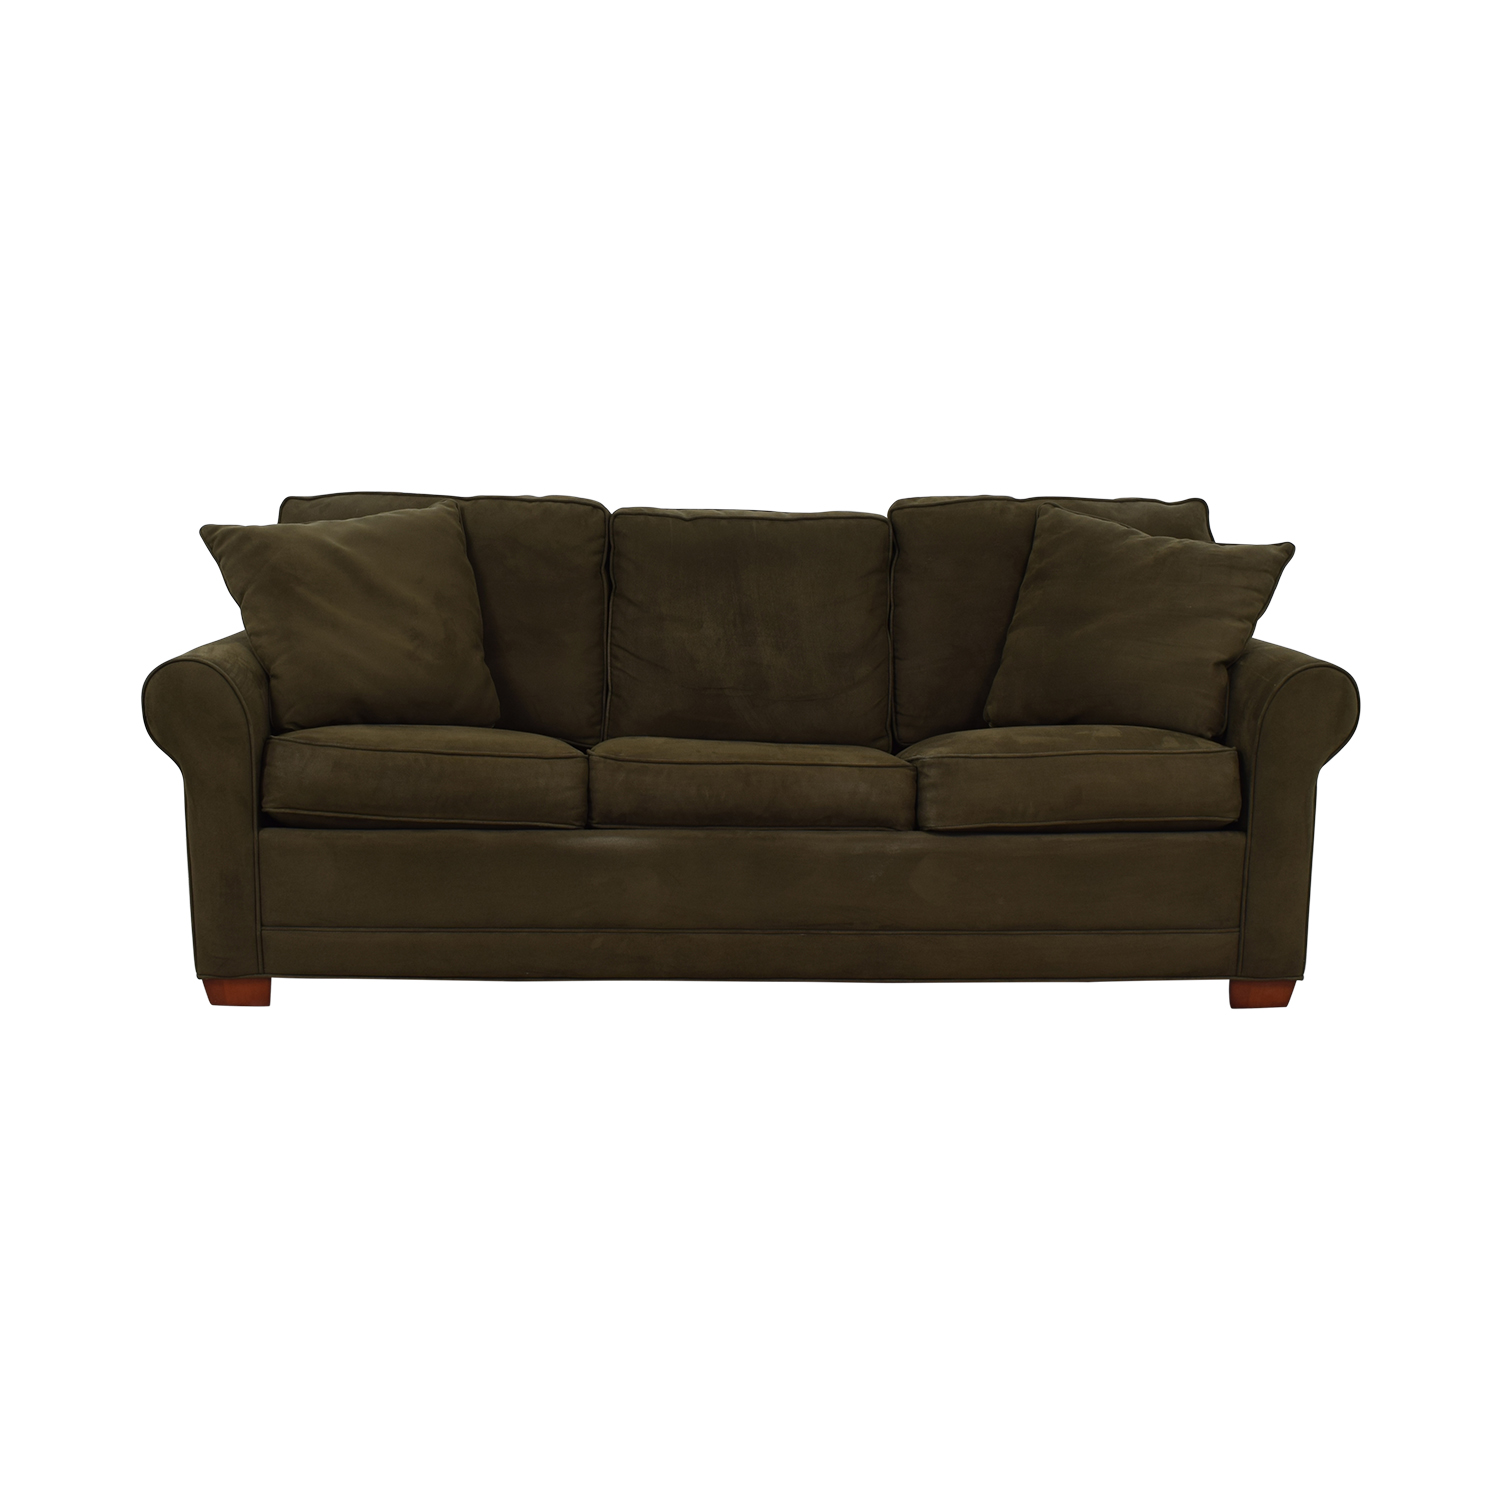 Raymour & Flanigan Raymour & Flanigan Brown Microfiber Convertible Three-Cushion Sofa price